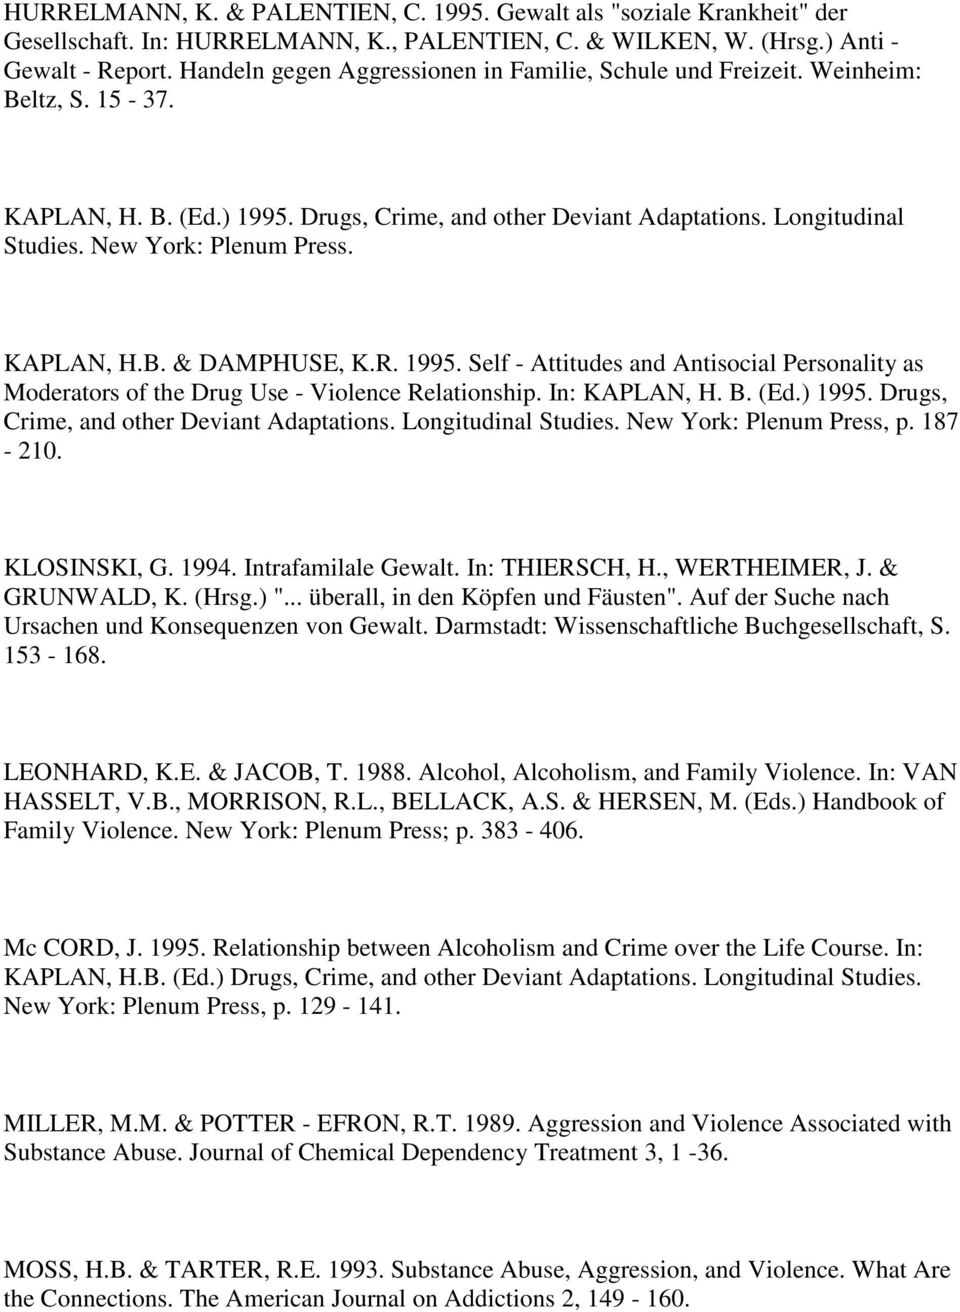 New York: Plenum Press. KAPLAN, H.B. & DAMPHUSE, K.R. 1995. Self - Attitudes and Antisocial Personality as Moderators of the Drug Use - Violence Relationship. In: KAPLAN, H. B. (Ed.) 1995.